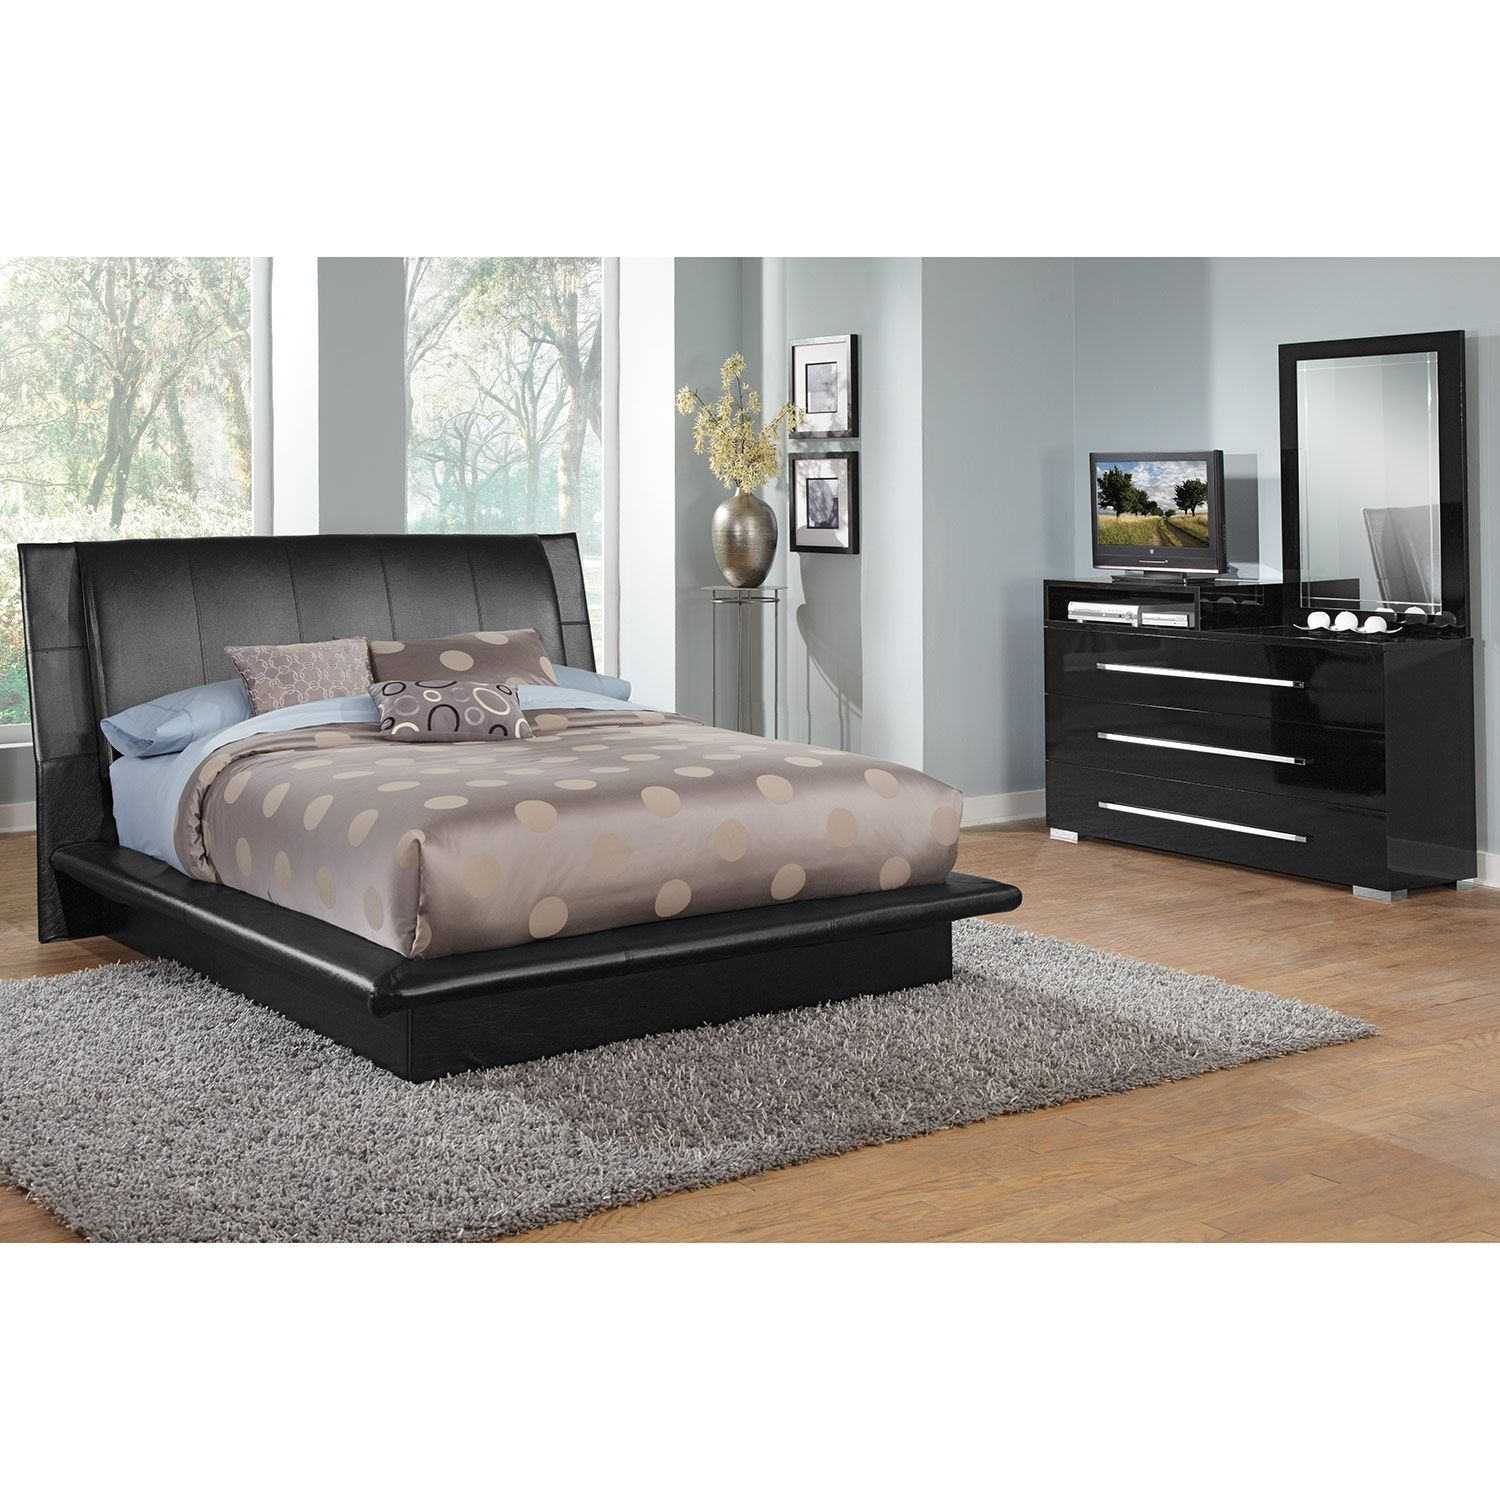 Gloss & Glamourour Dimora Black Collection Brings All The Class Amazing Value City Furniture Bedroom Sets Inspiration